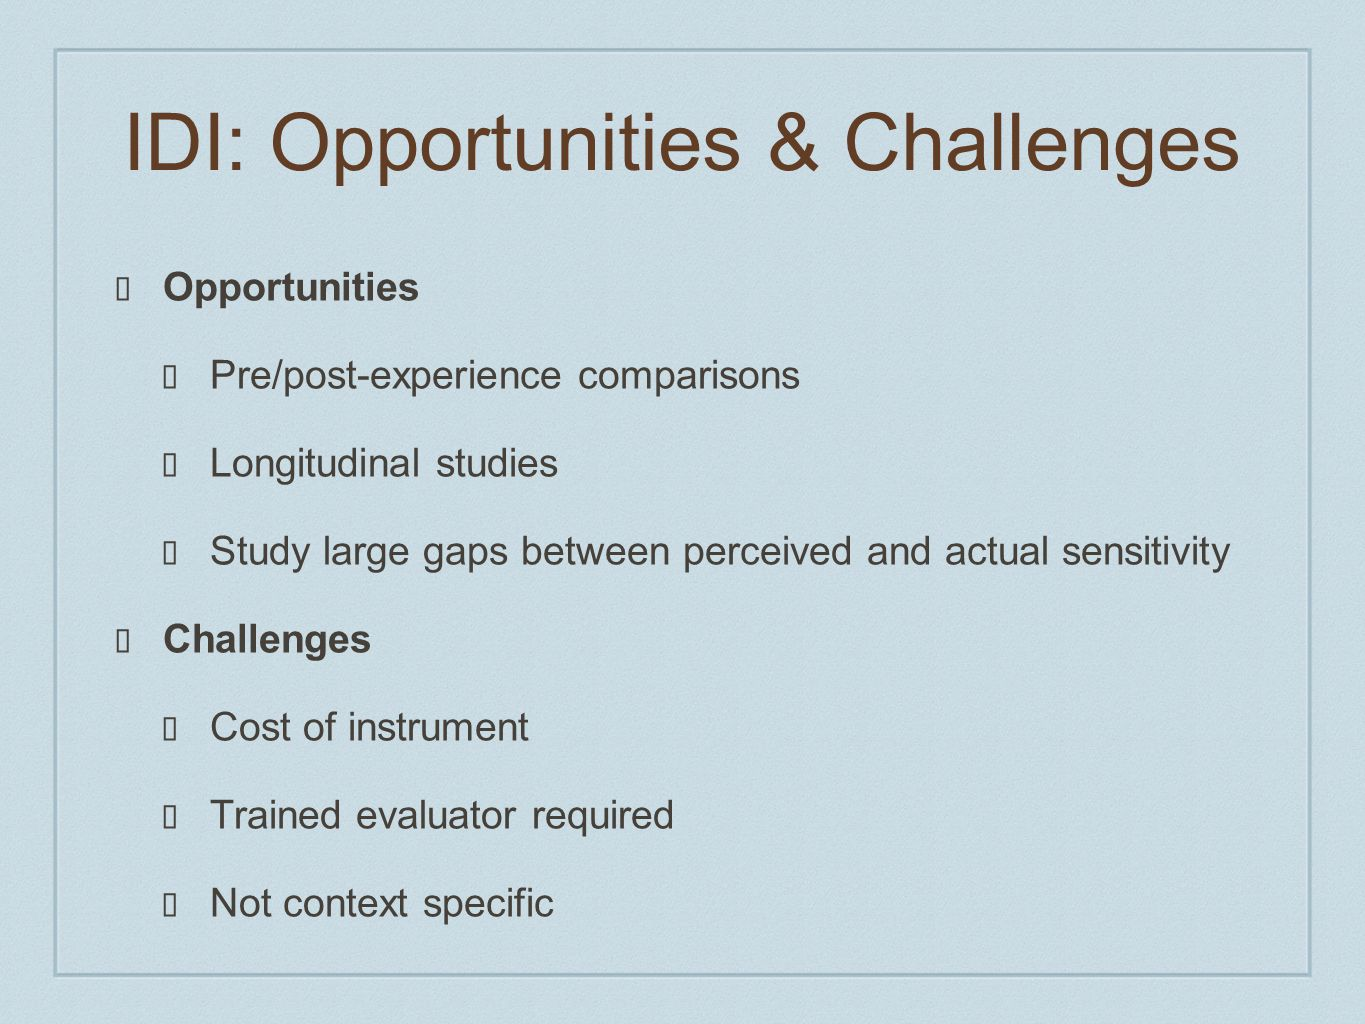 IDI: Opportunities & Challenges ❖ Opportunities ❖ Pre/post-experience comparisons ❖ Longitudinal studies ❖ Study large gaps between perceived and actu